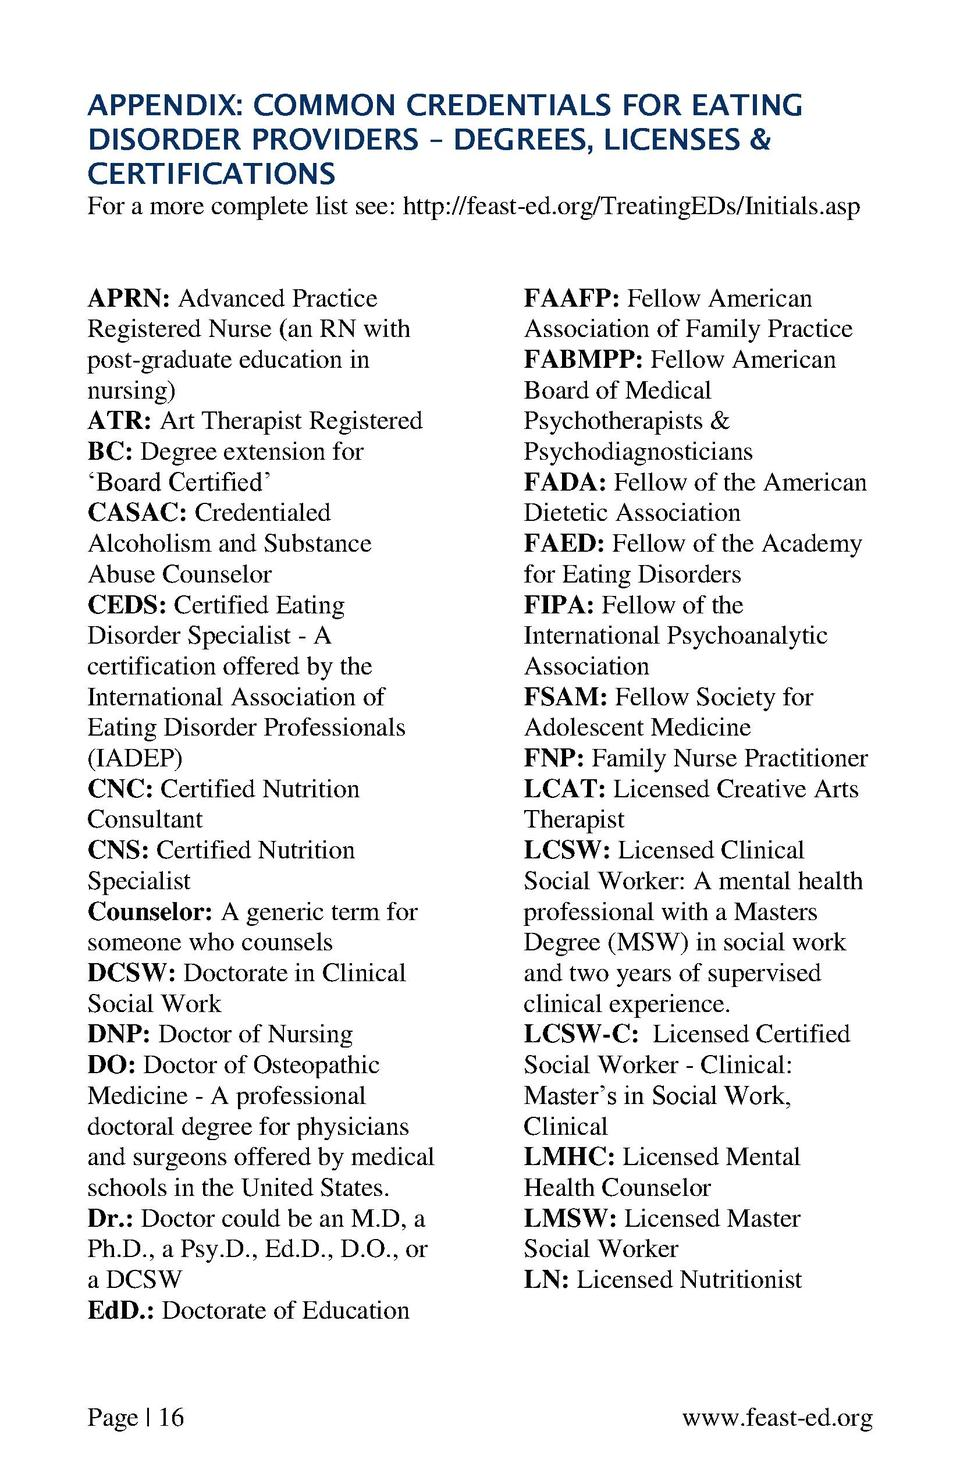 APPENDIX  COMMON CREDENTIALS FOR EATING DISORDER PROVIDERS     DEGREES, LICENSES   CERTIFICATIONS For a more complete list...